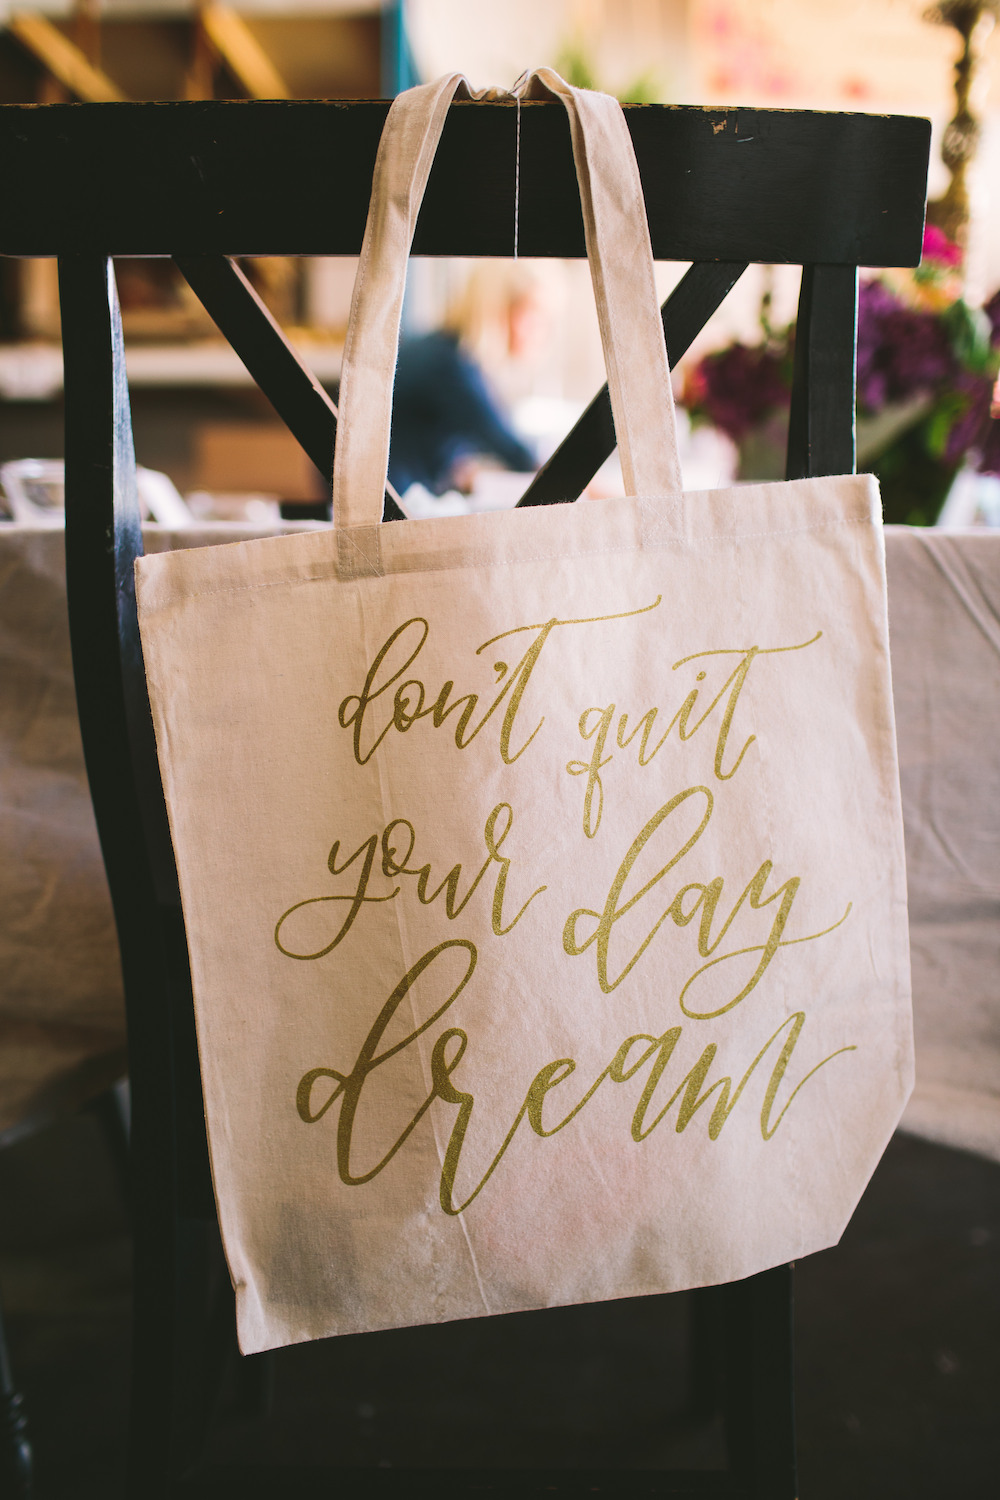 Each attendee takes home this customized tote bag that was created as a collaboration with The Printed Palette